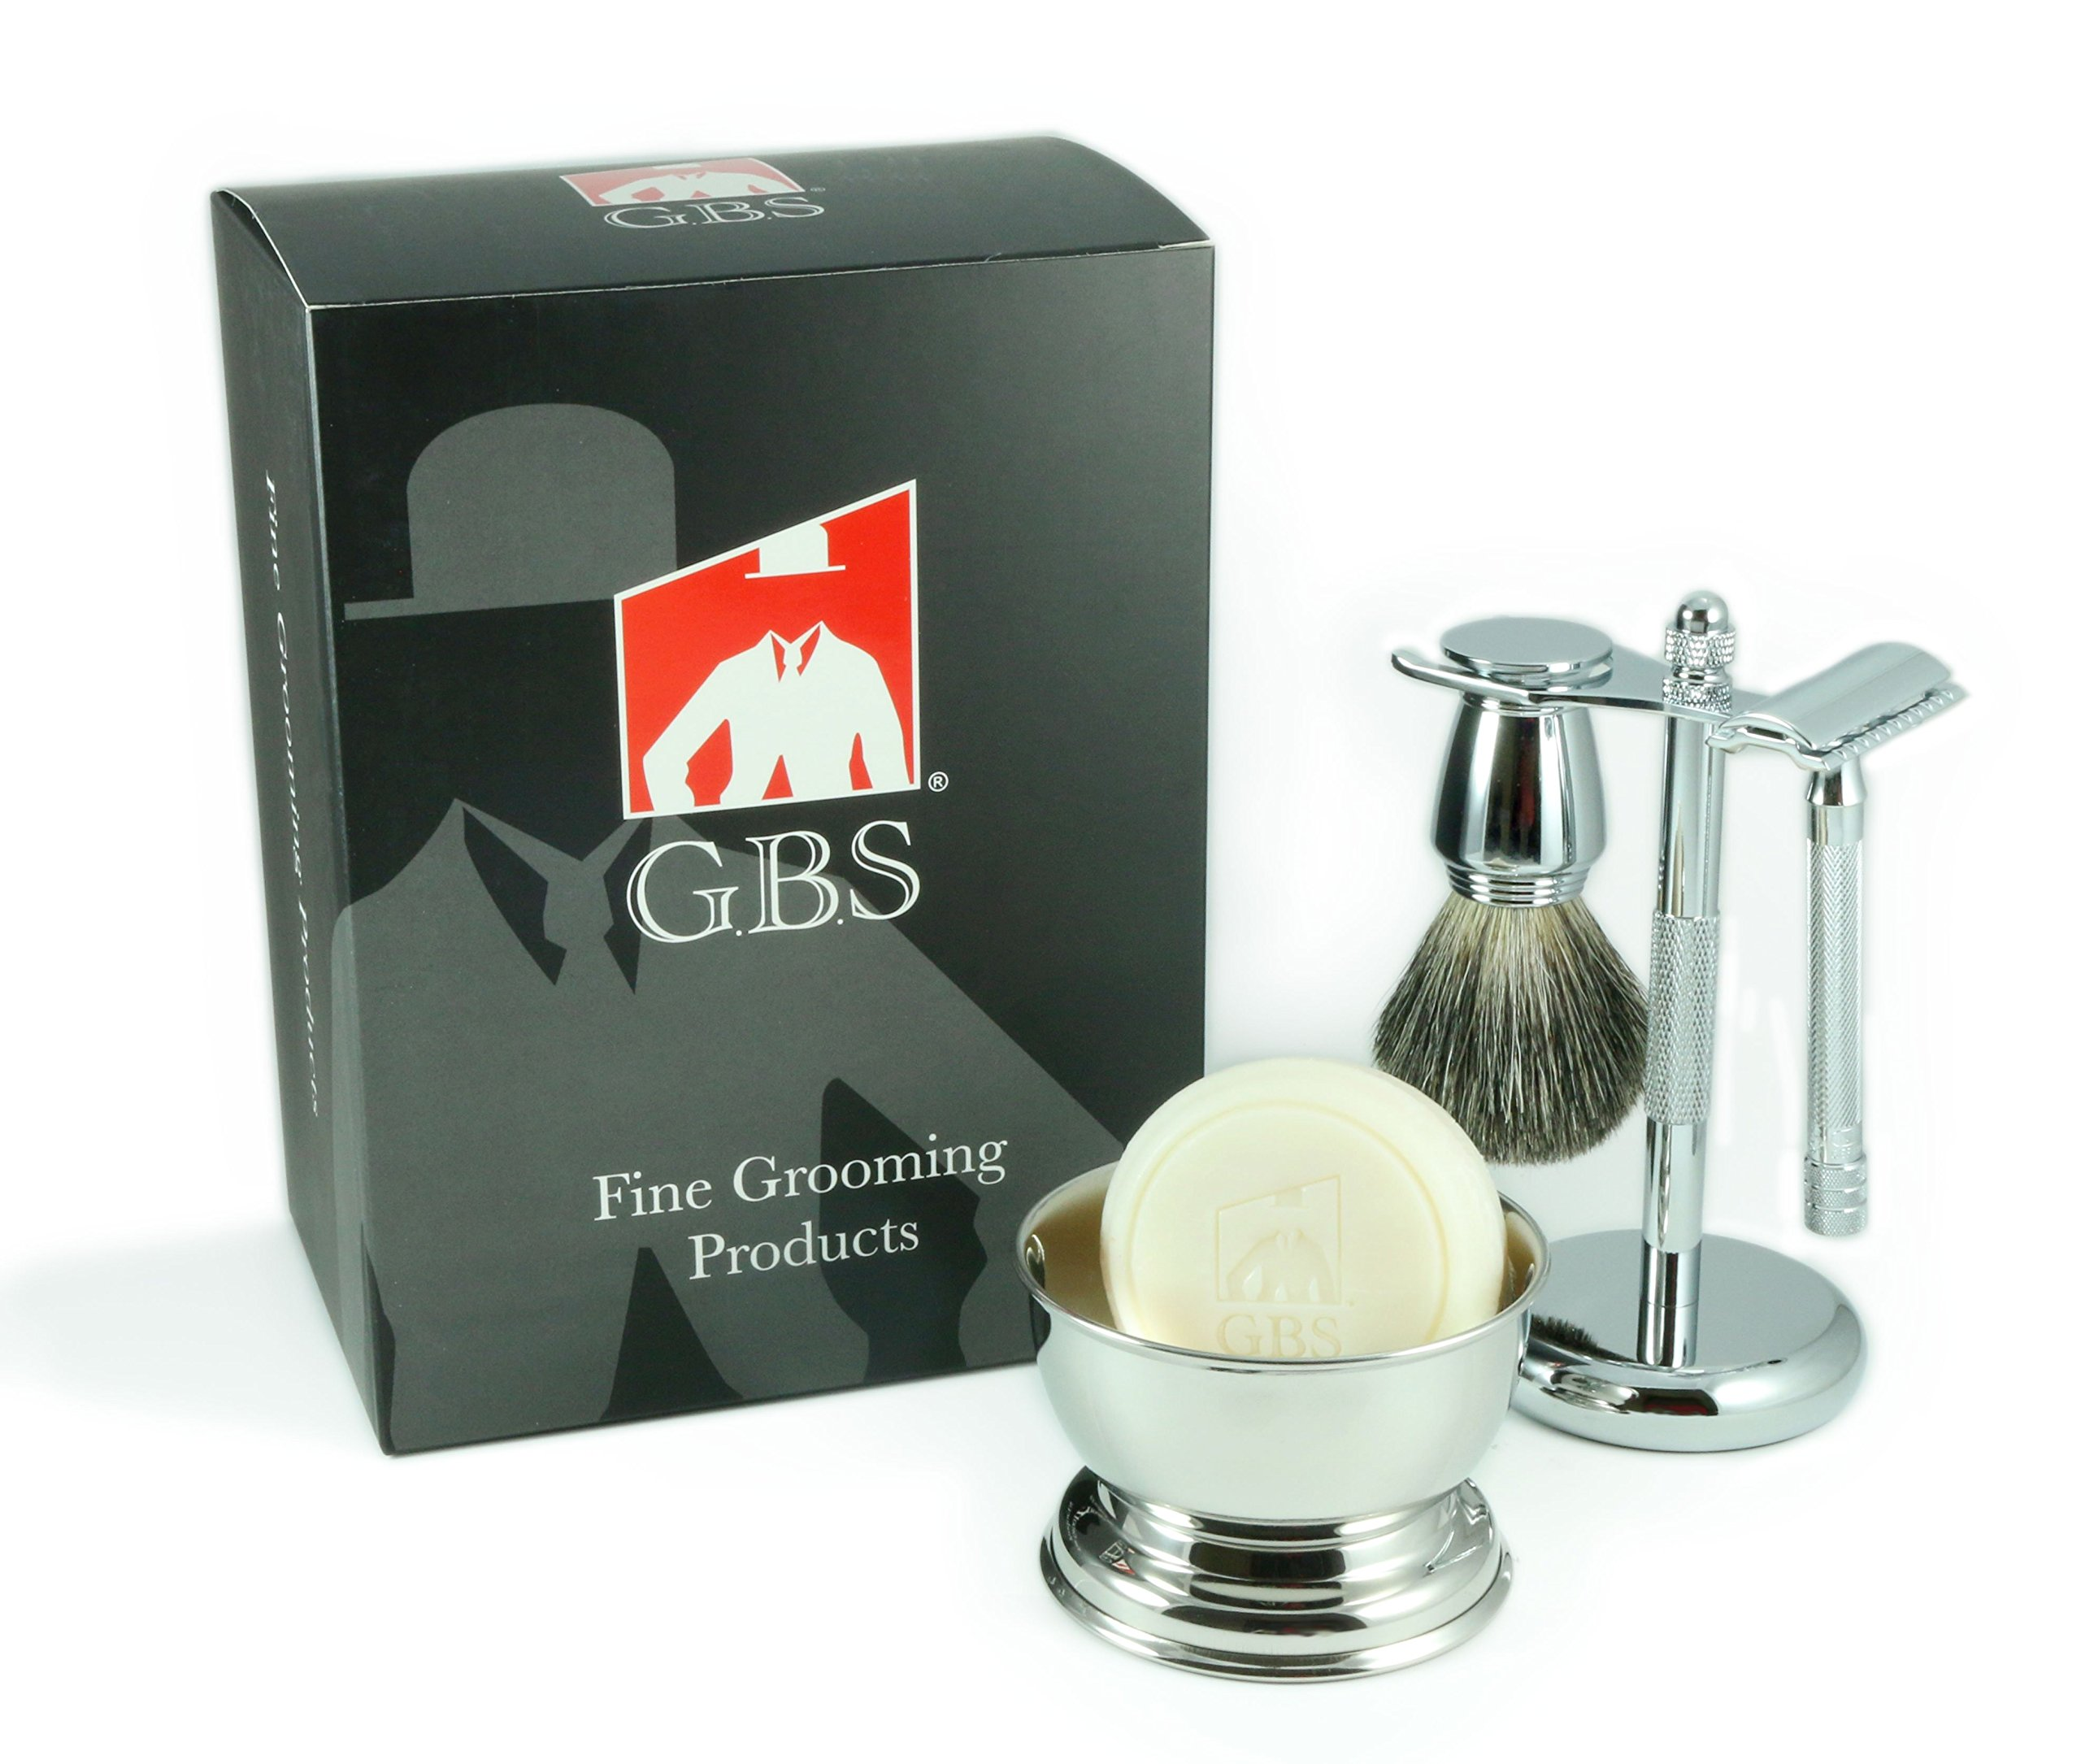 5 Piece Shaving Gift Set - Comes with Gift Box - Merkur 23C Long Handle Safety Razor, Bowl, GBS Shaving Soap, Badger Brush, Stand and Safety Razor